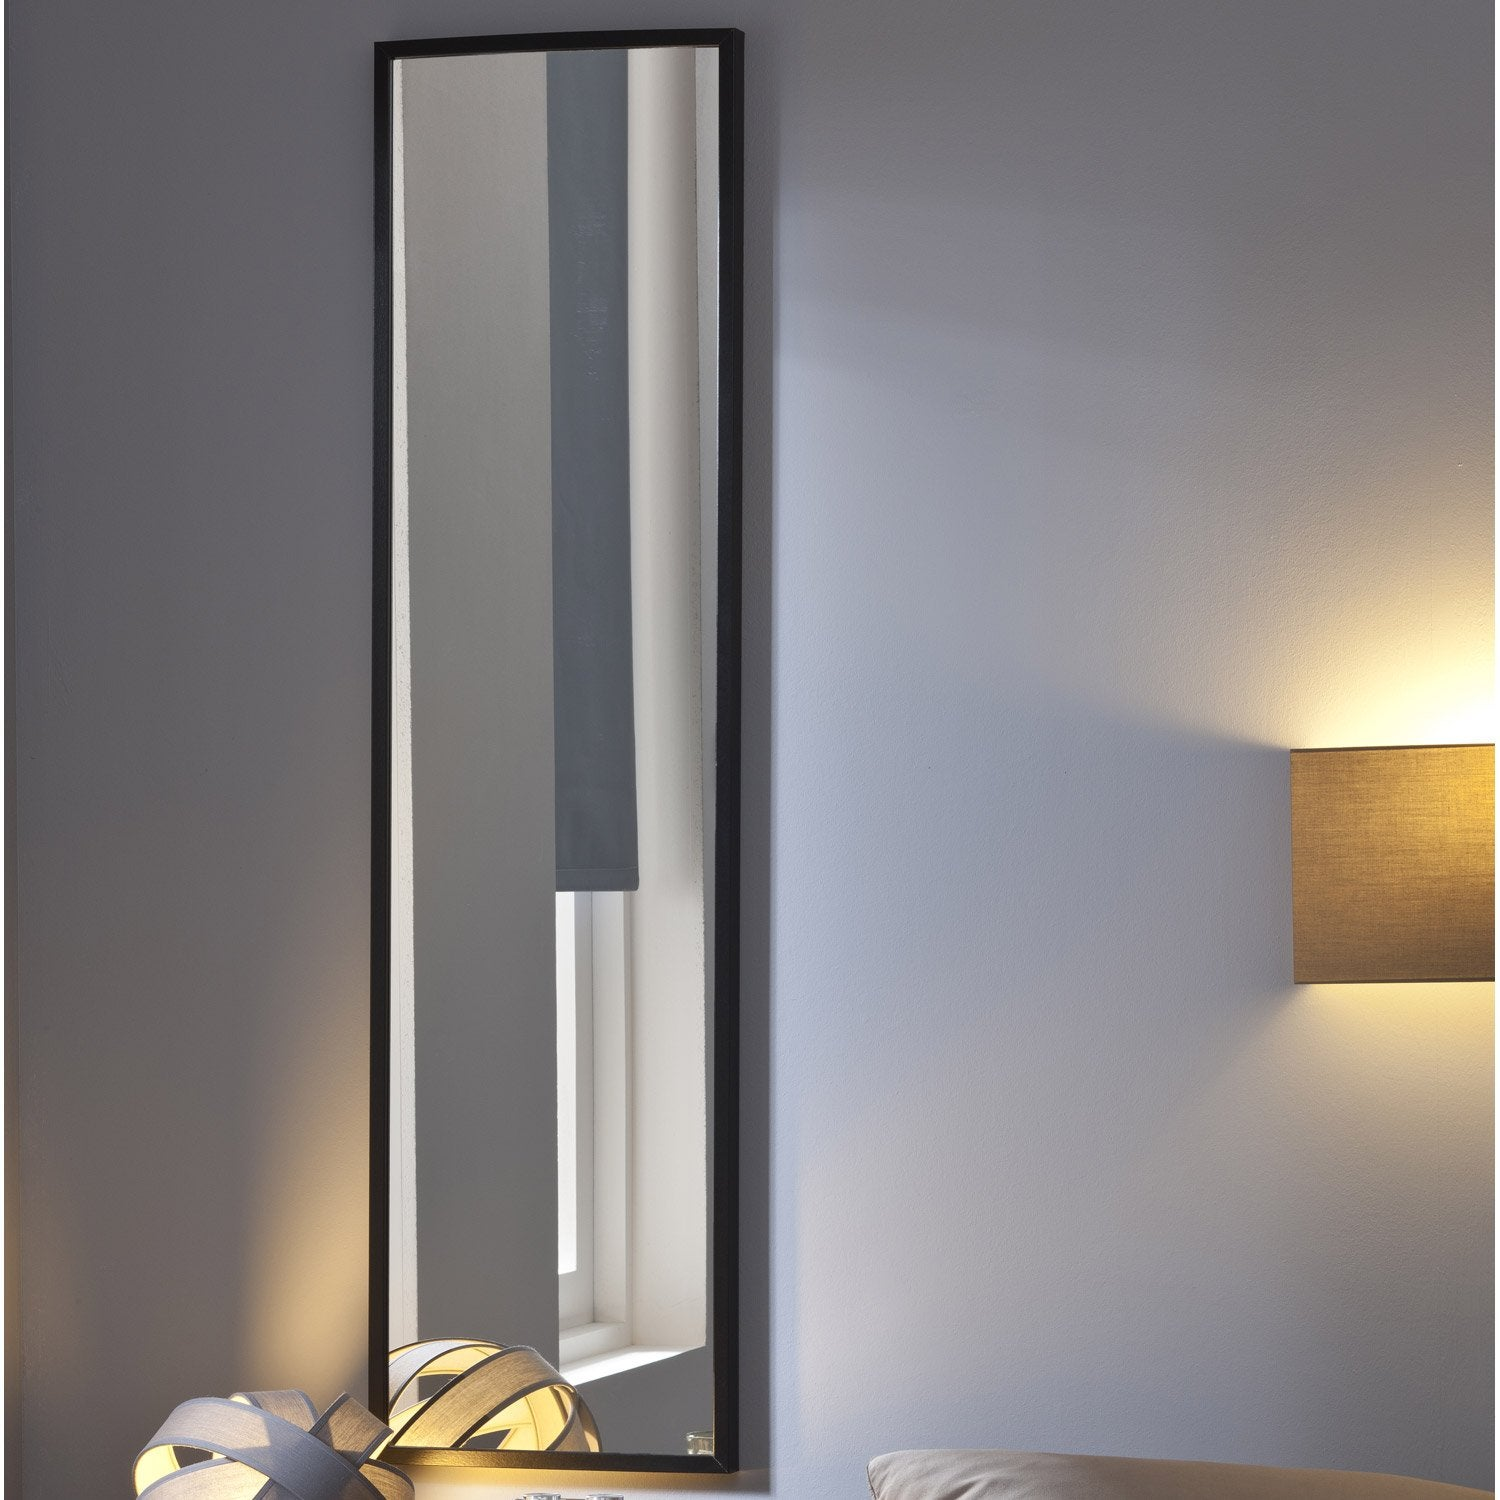 miroir lario inspire noir x cm leroy merlin. Black Bedroom Furniture Sets. Home Design Ideas